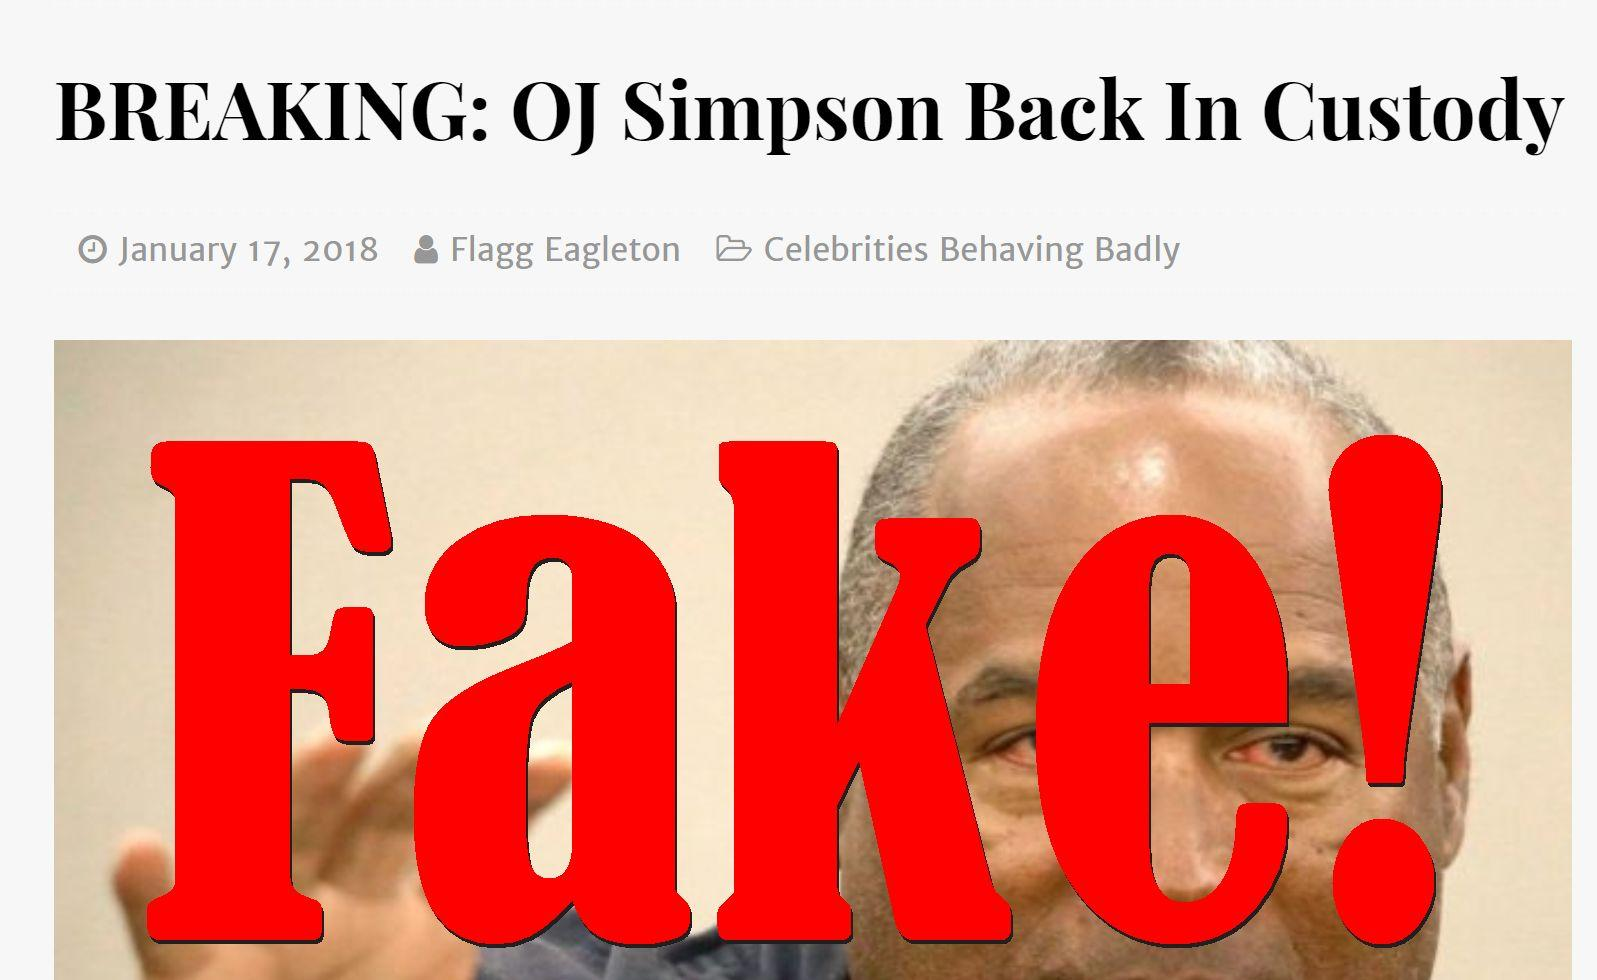 Fake News: OJ Simpson NOT Back In Custody